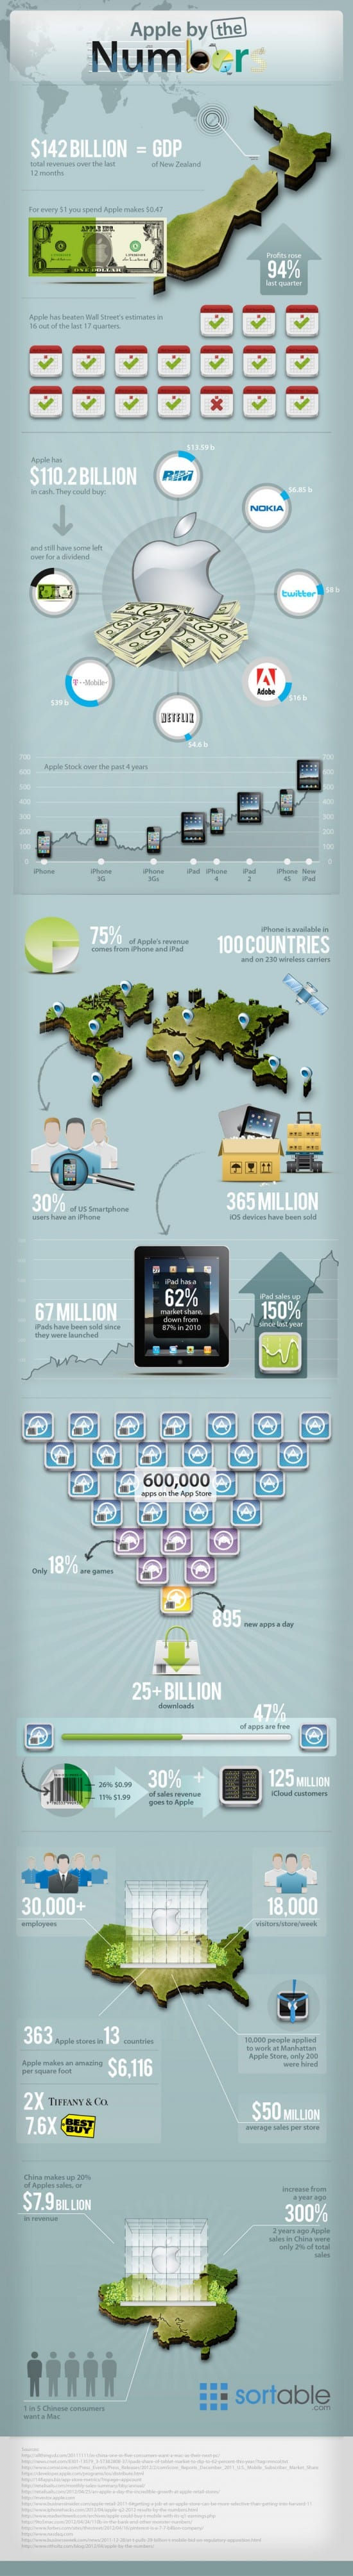 infographic-apple-by-the-numbers